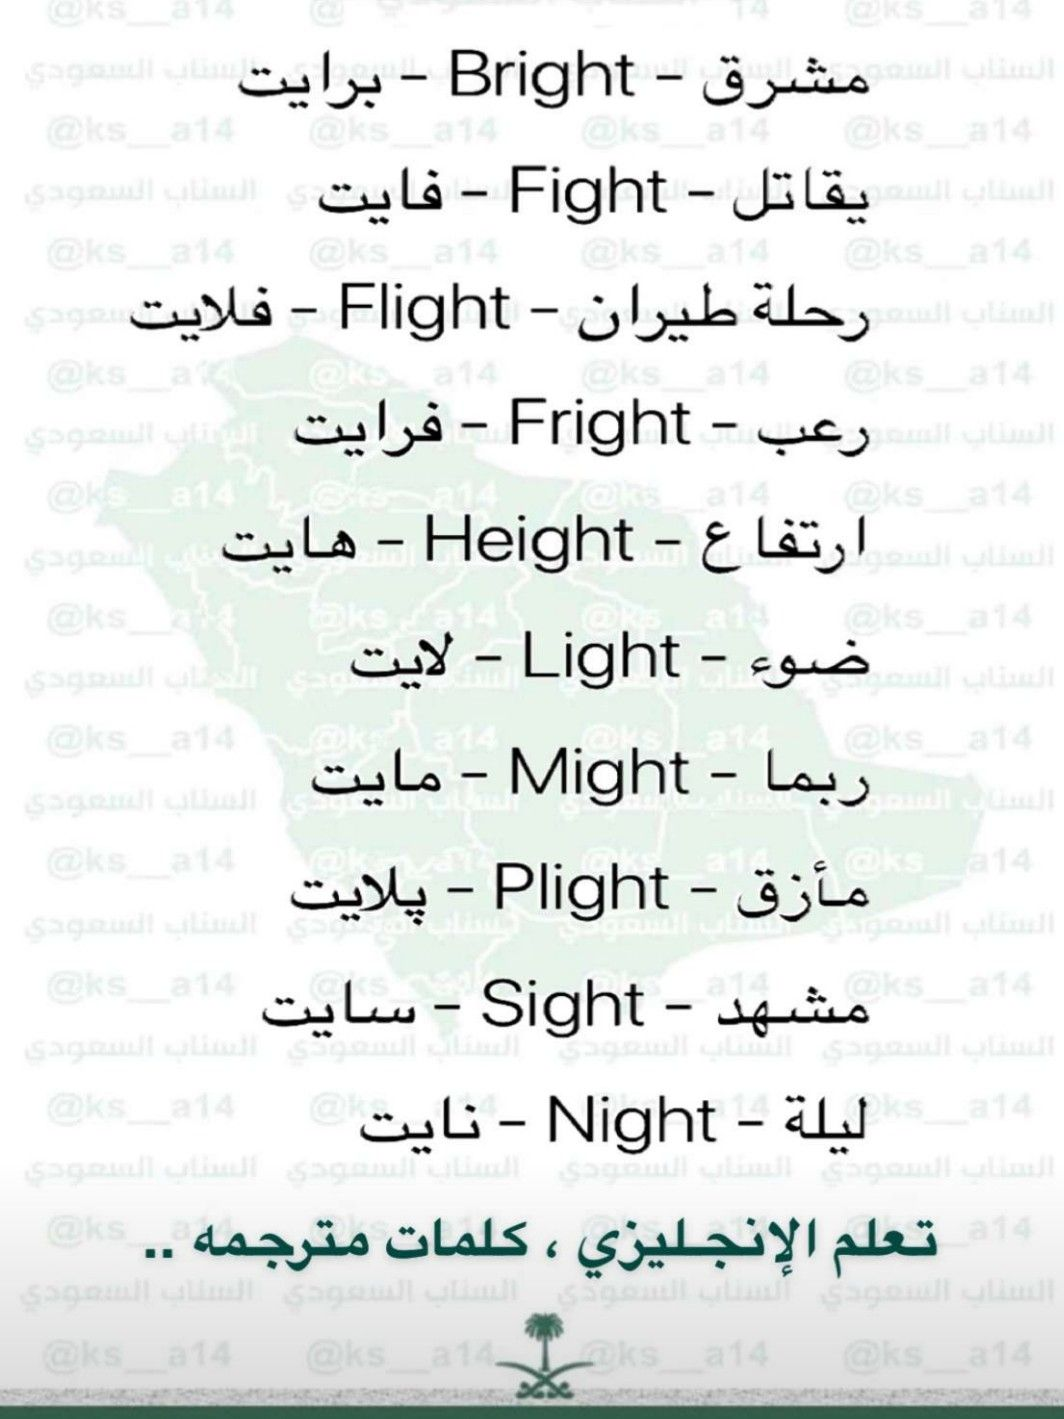 Pin By Njood D On لغة انجليزية English Language Learning Grammar Learn English Words English Phrases